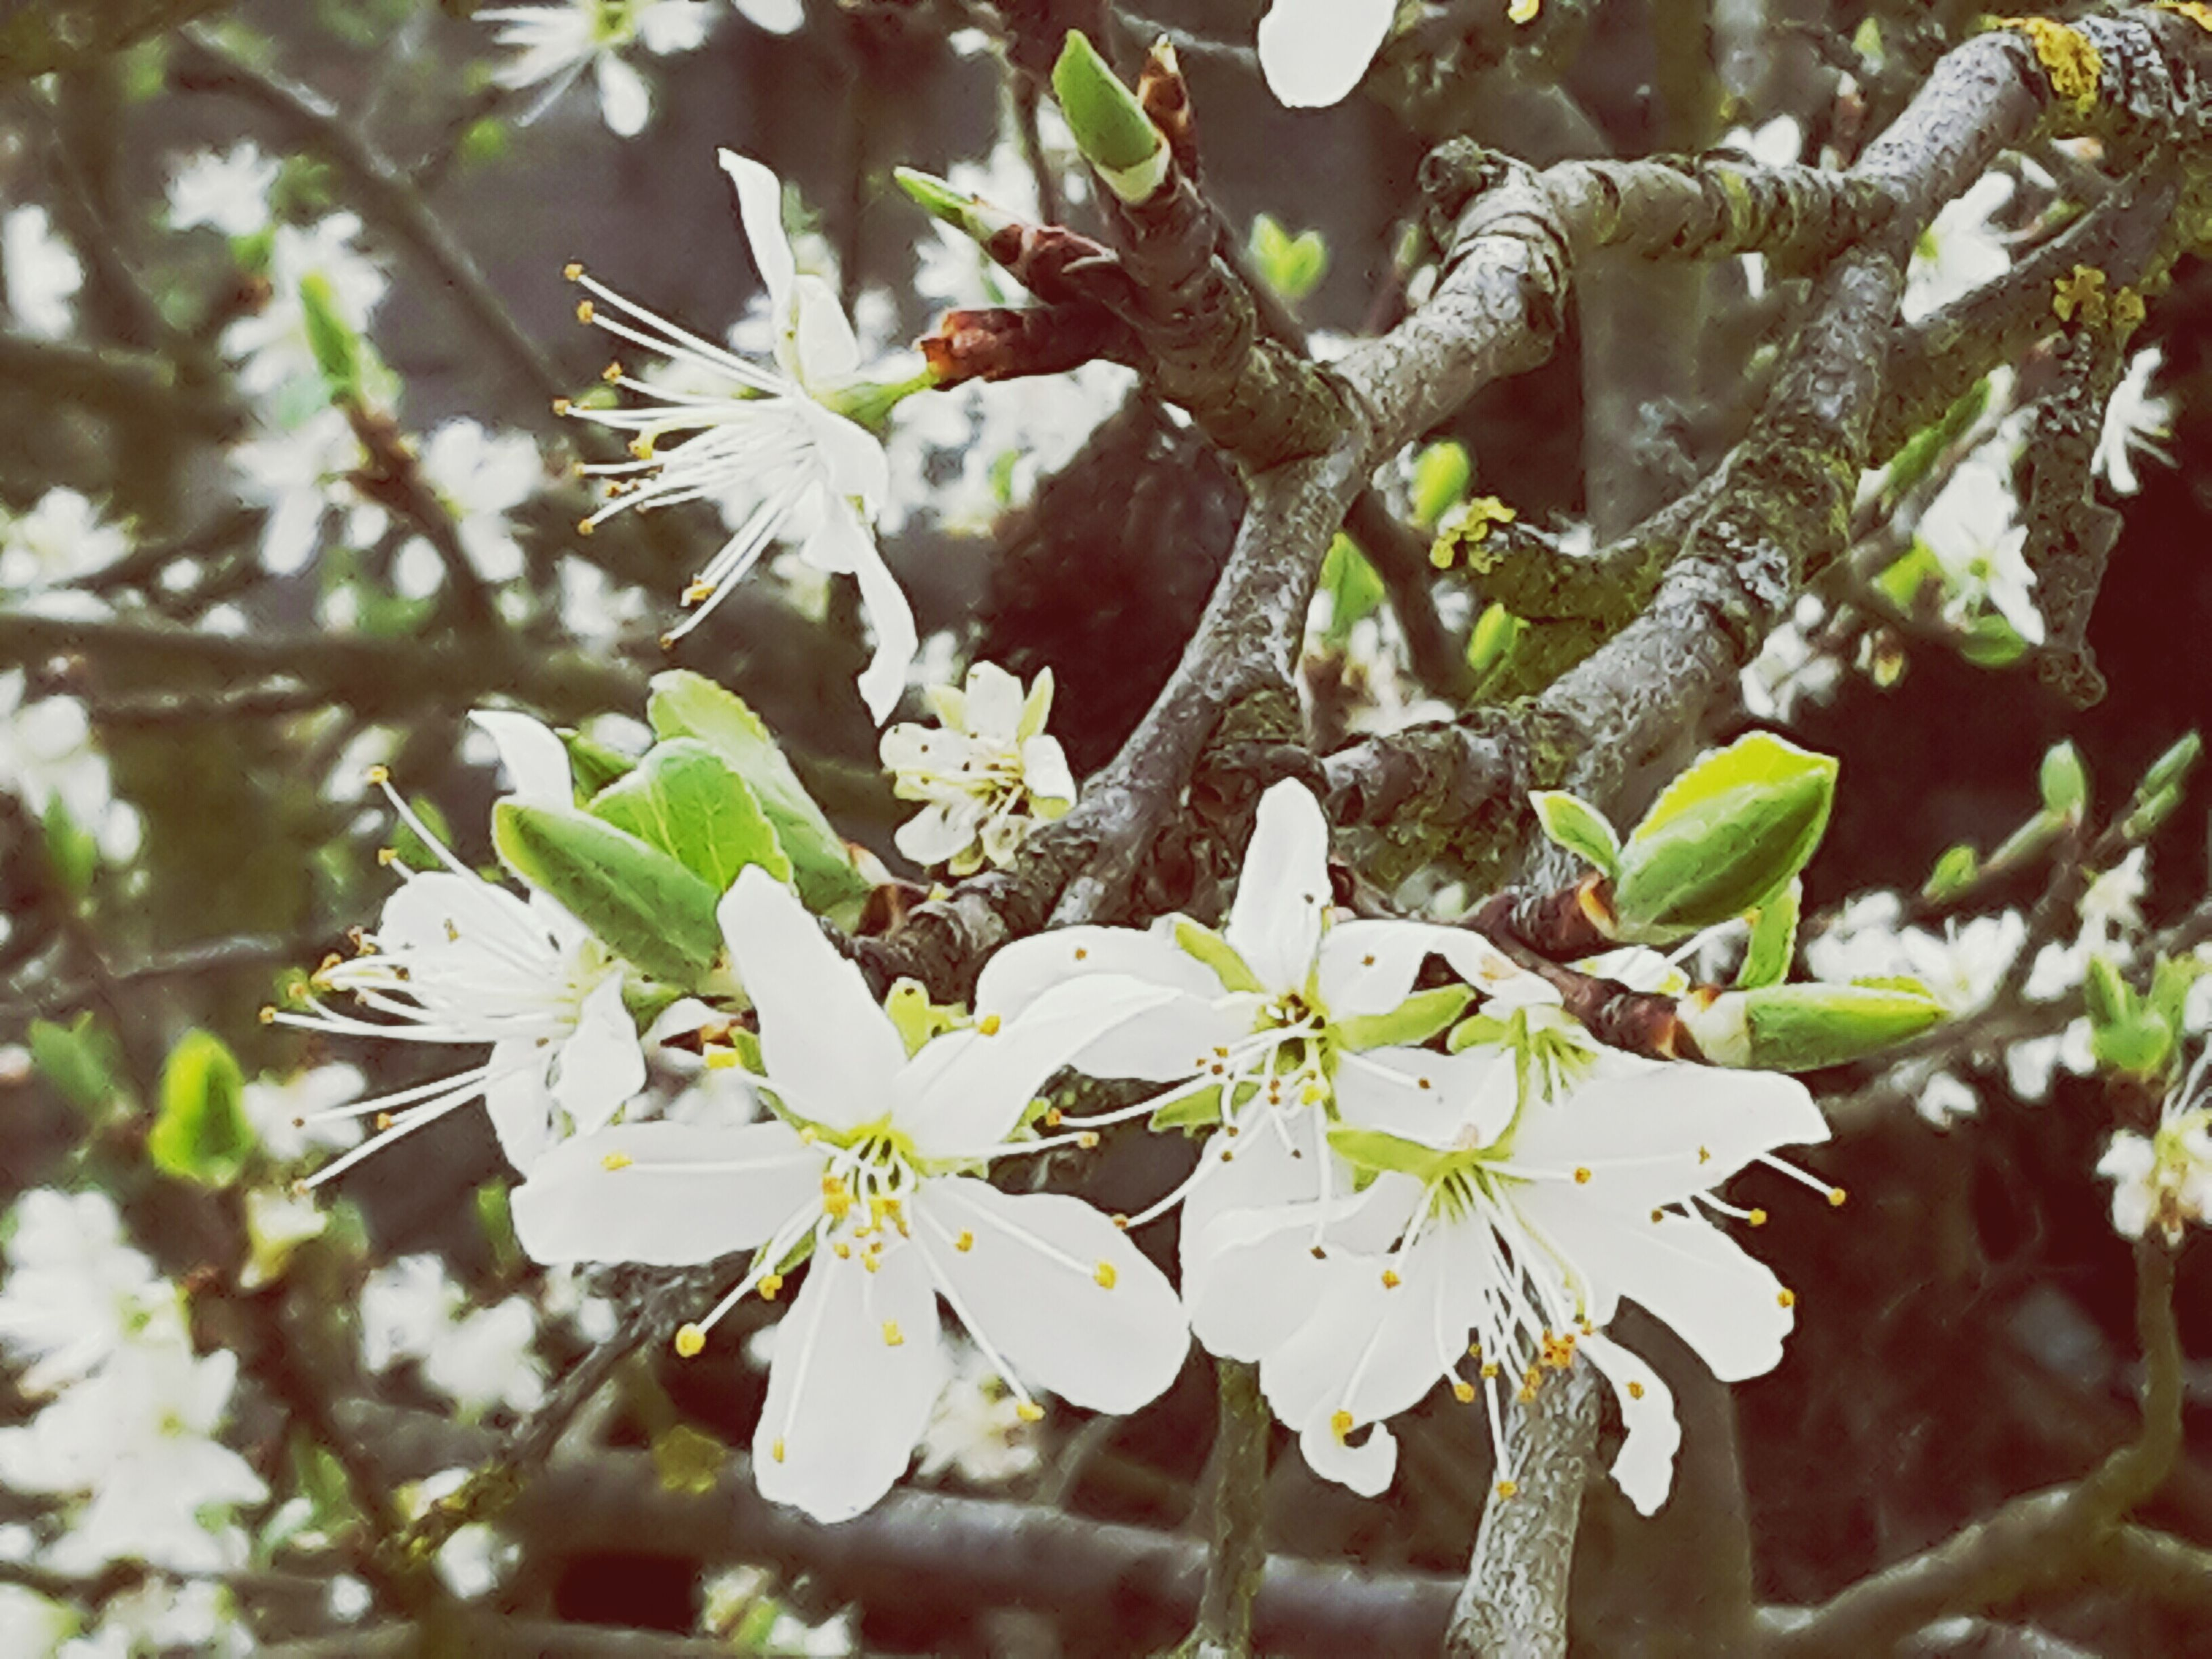 flower, growth, freshness, fragility, focus on foreground, tree, white color, branch, nature, beauty in nature, petal, close-up, blooming, blossom, in bloom, flower head, plant, twig, springtime, cherry blossom